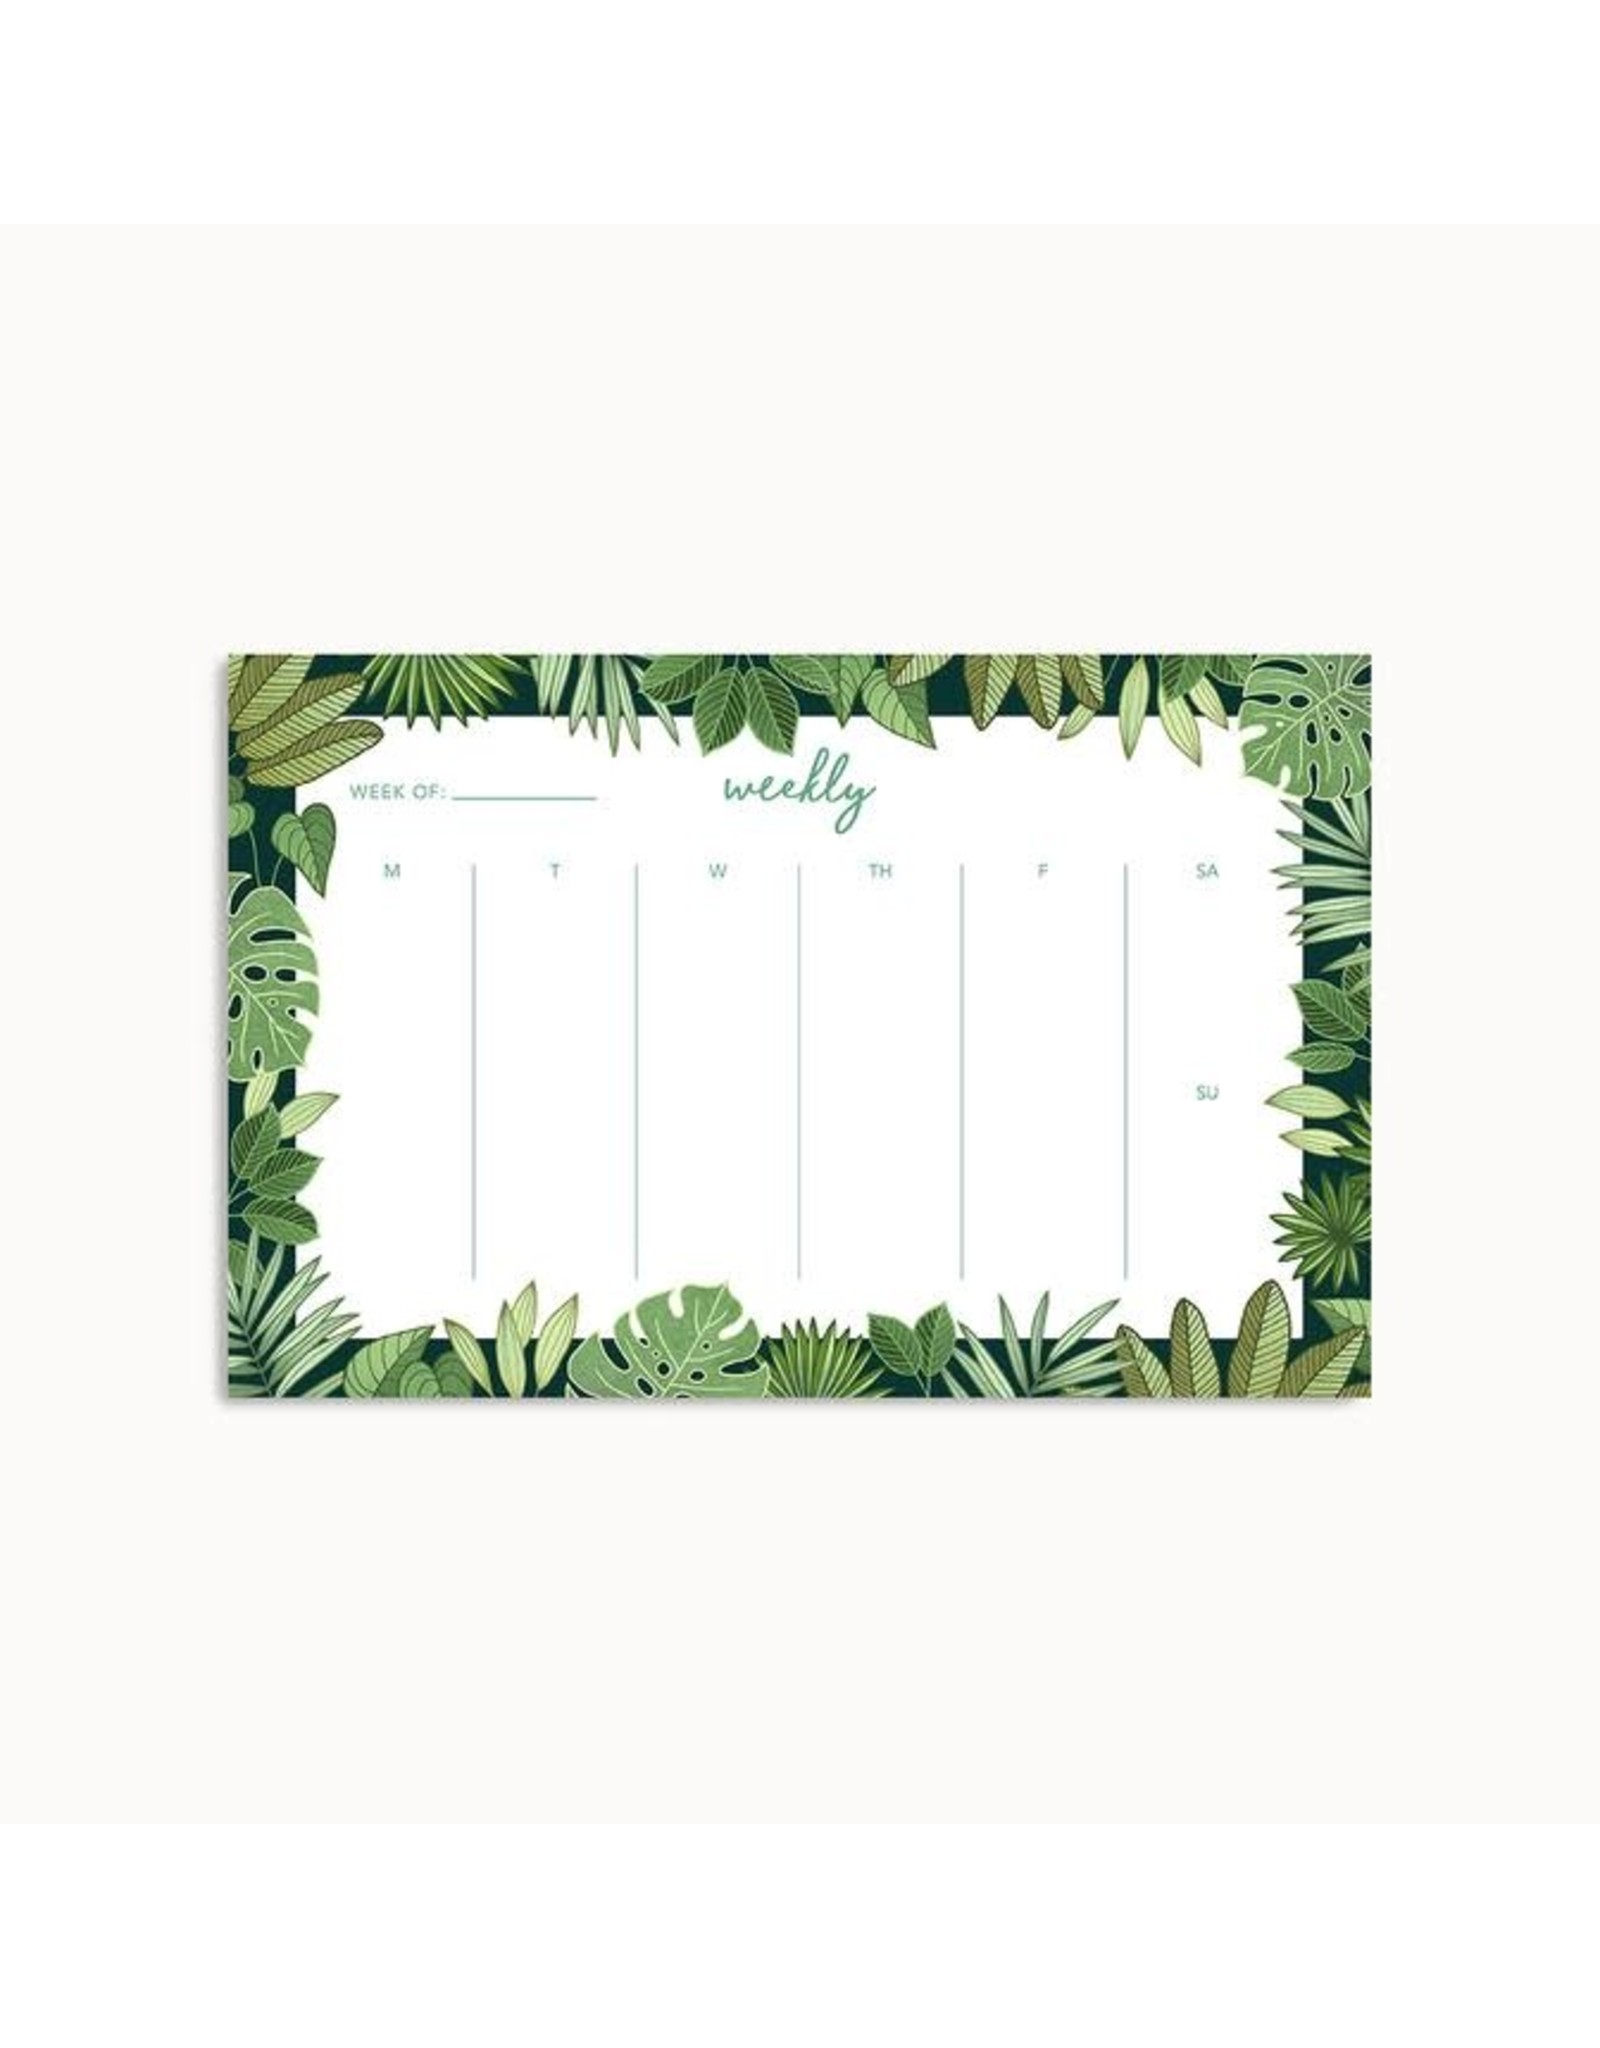 Linden Paper Co. Jungle Weekly Planner Pad